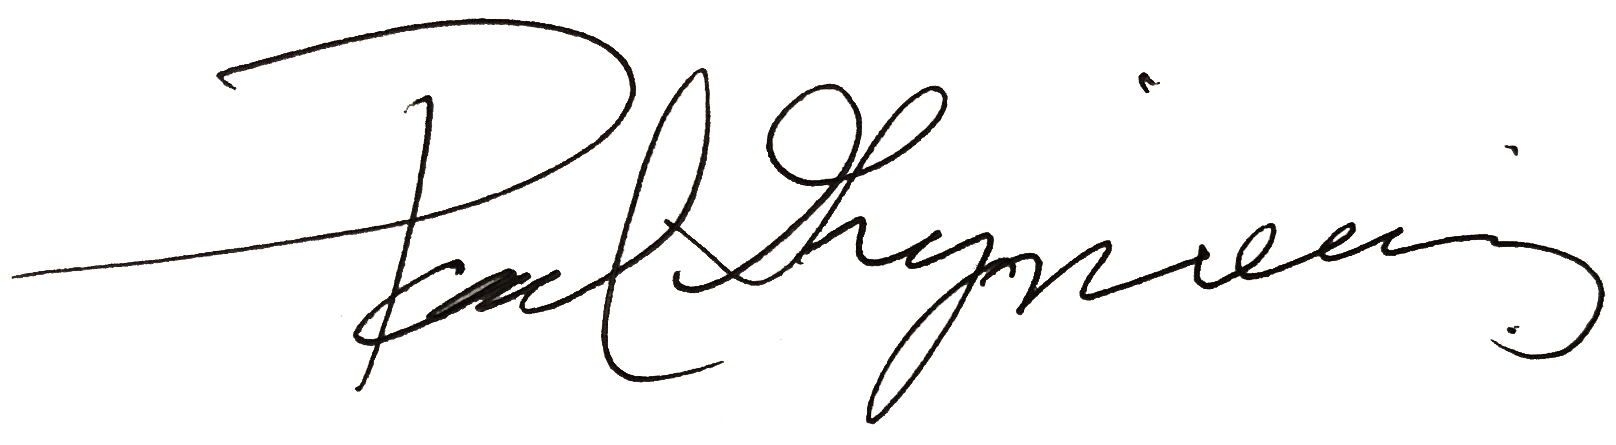 paul-signature-transparent.png